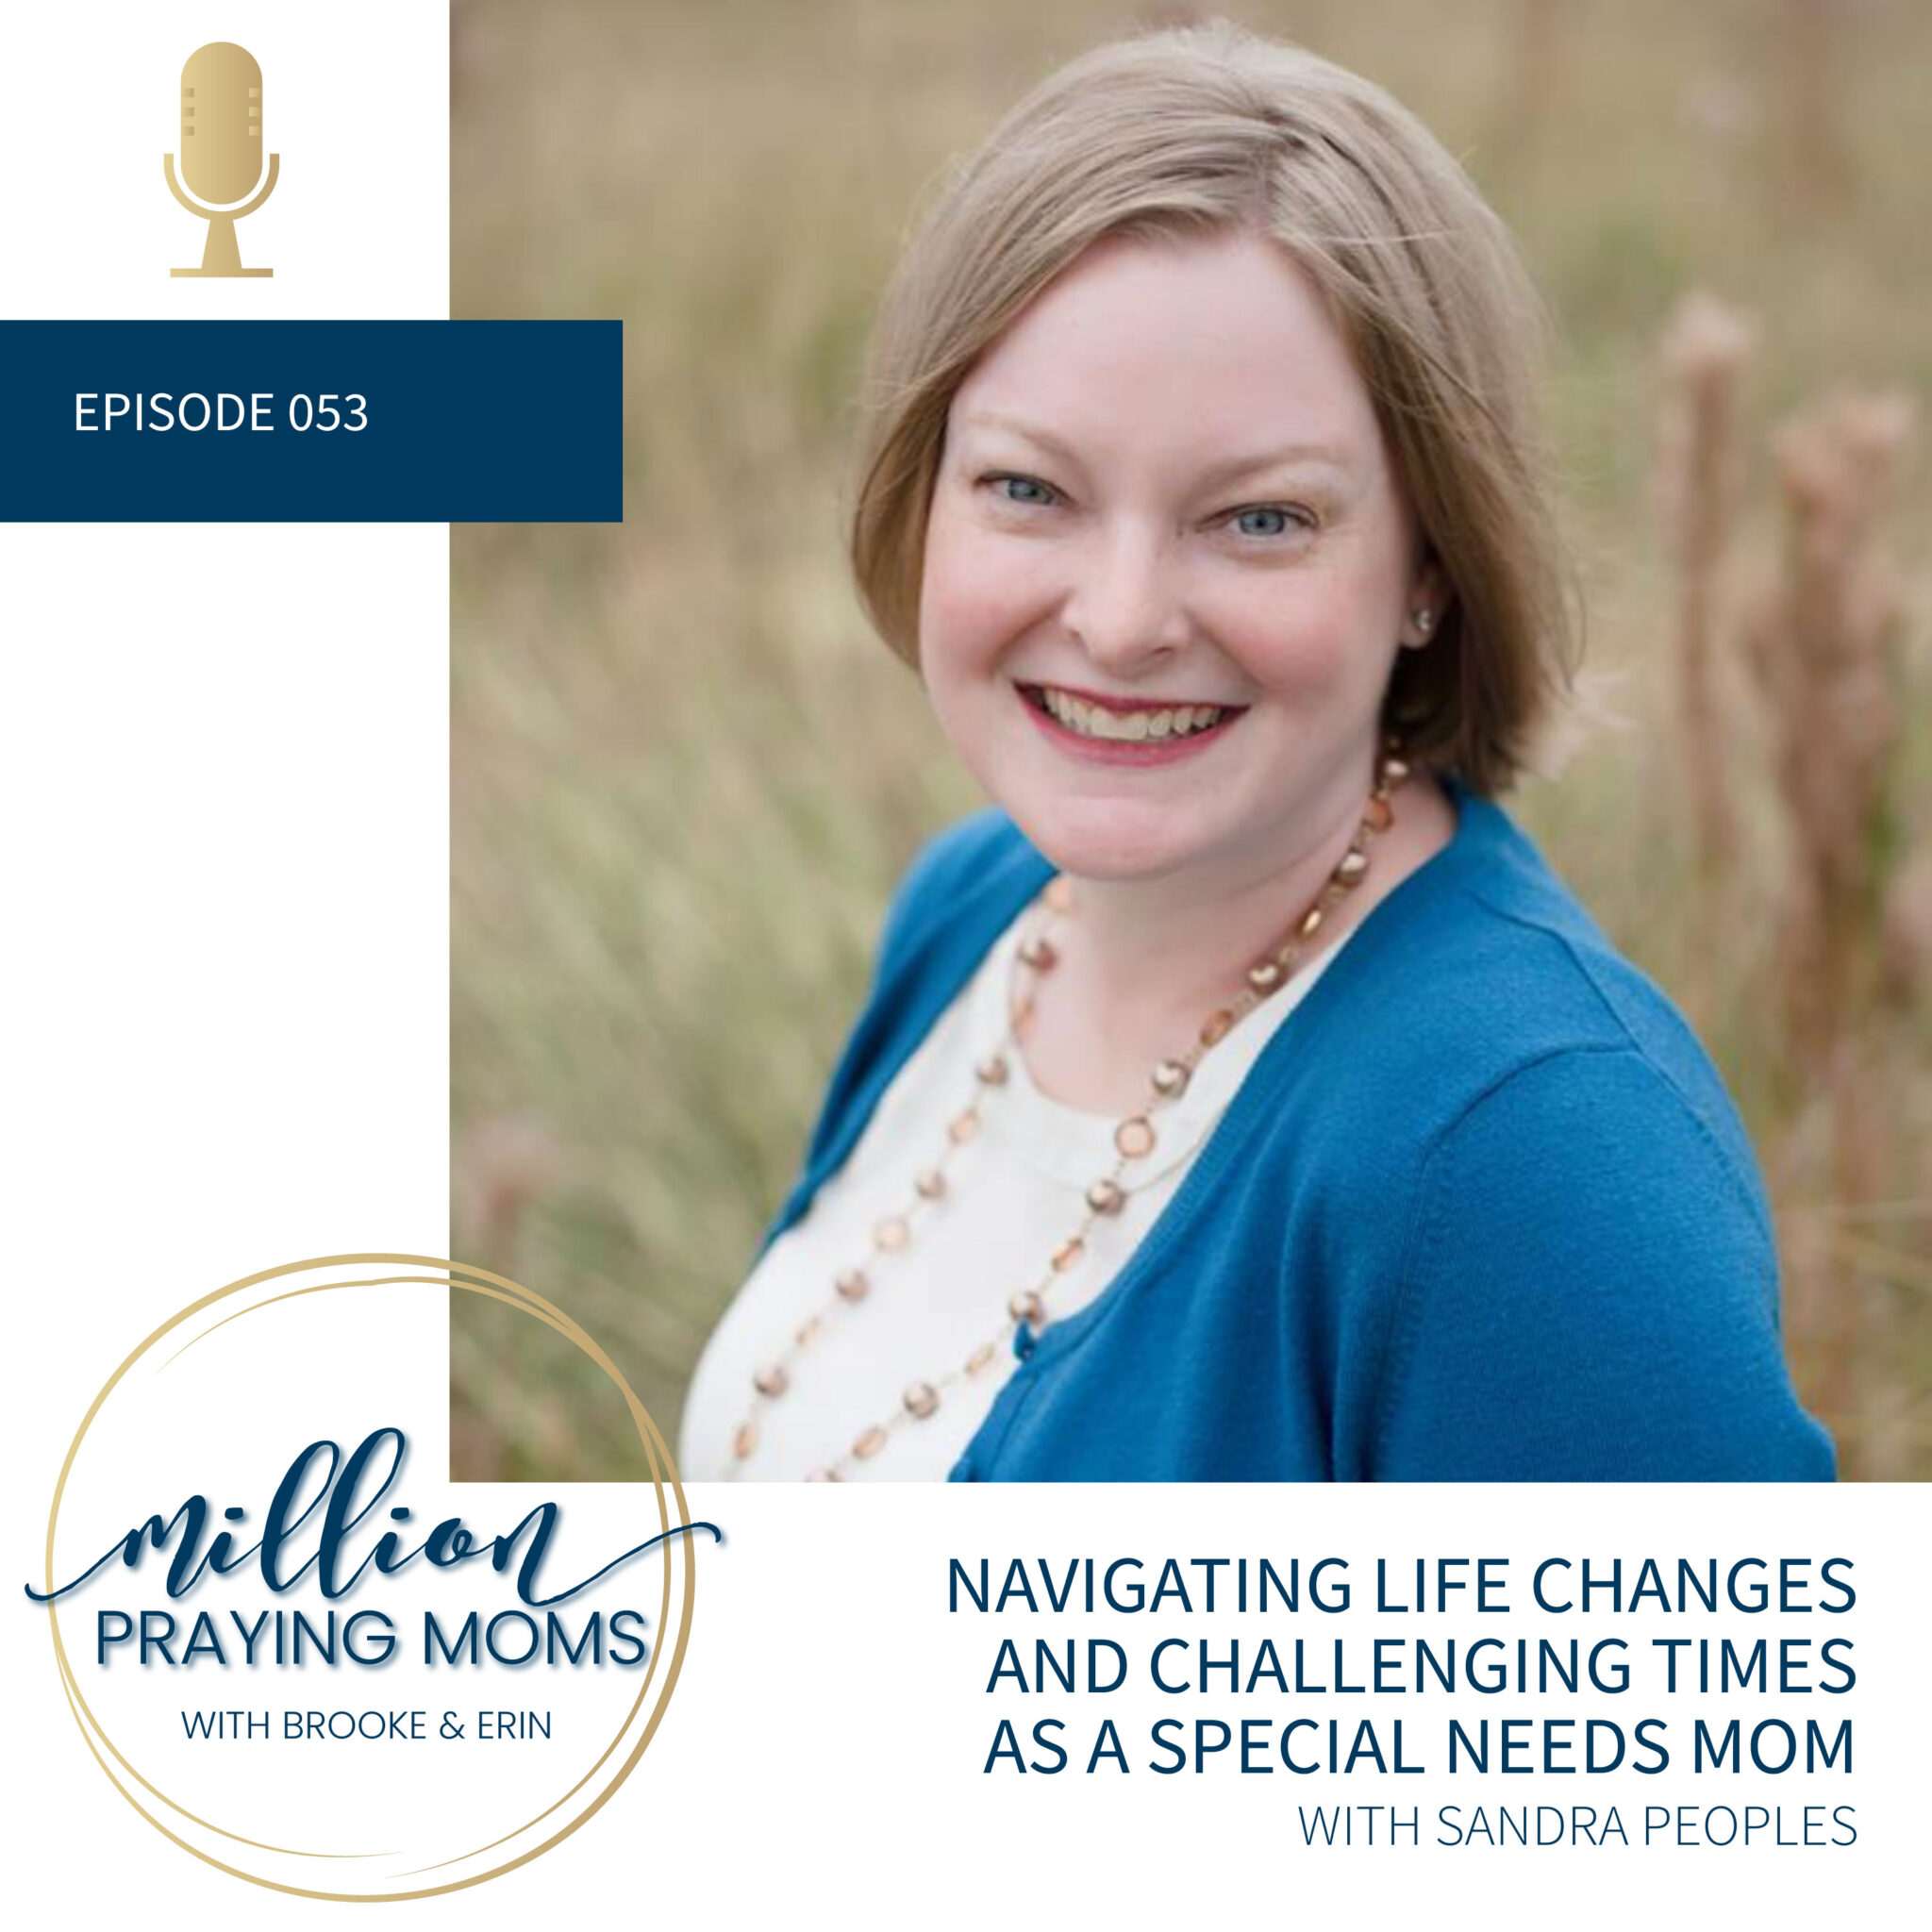 #053: Navigating Life Changes and Challenges as a Special-Needs Mom